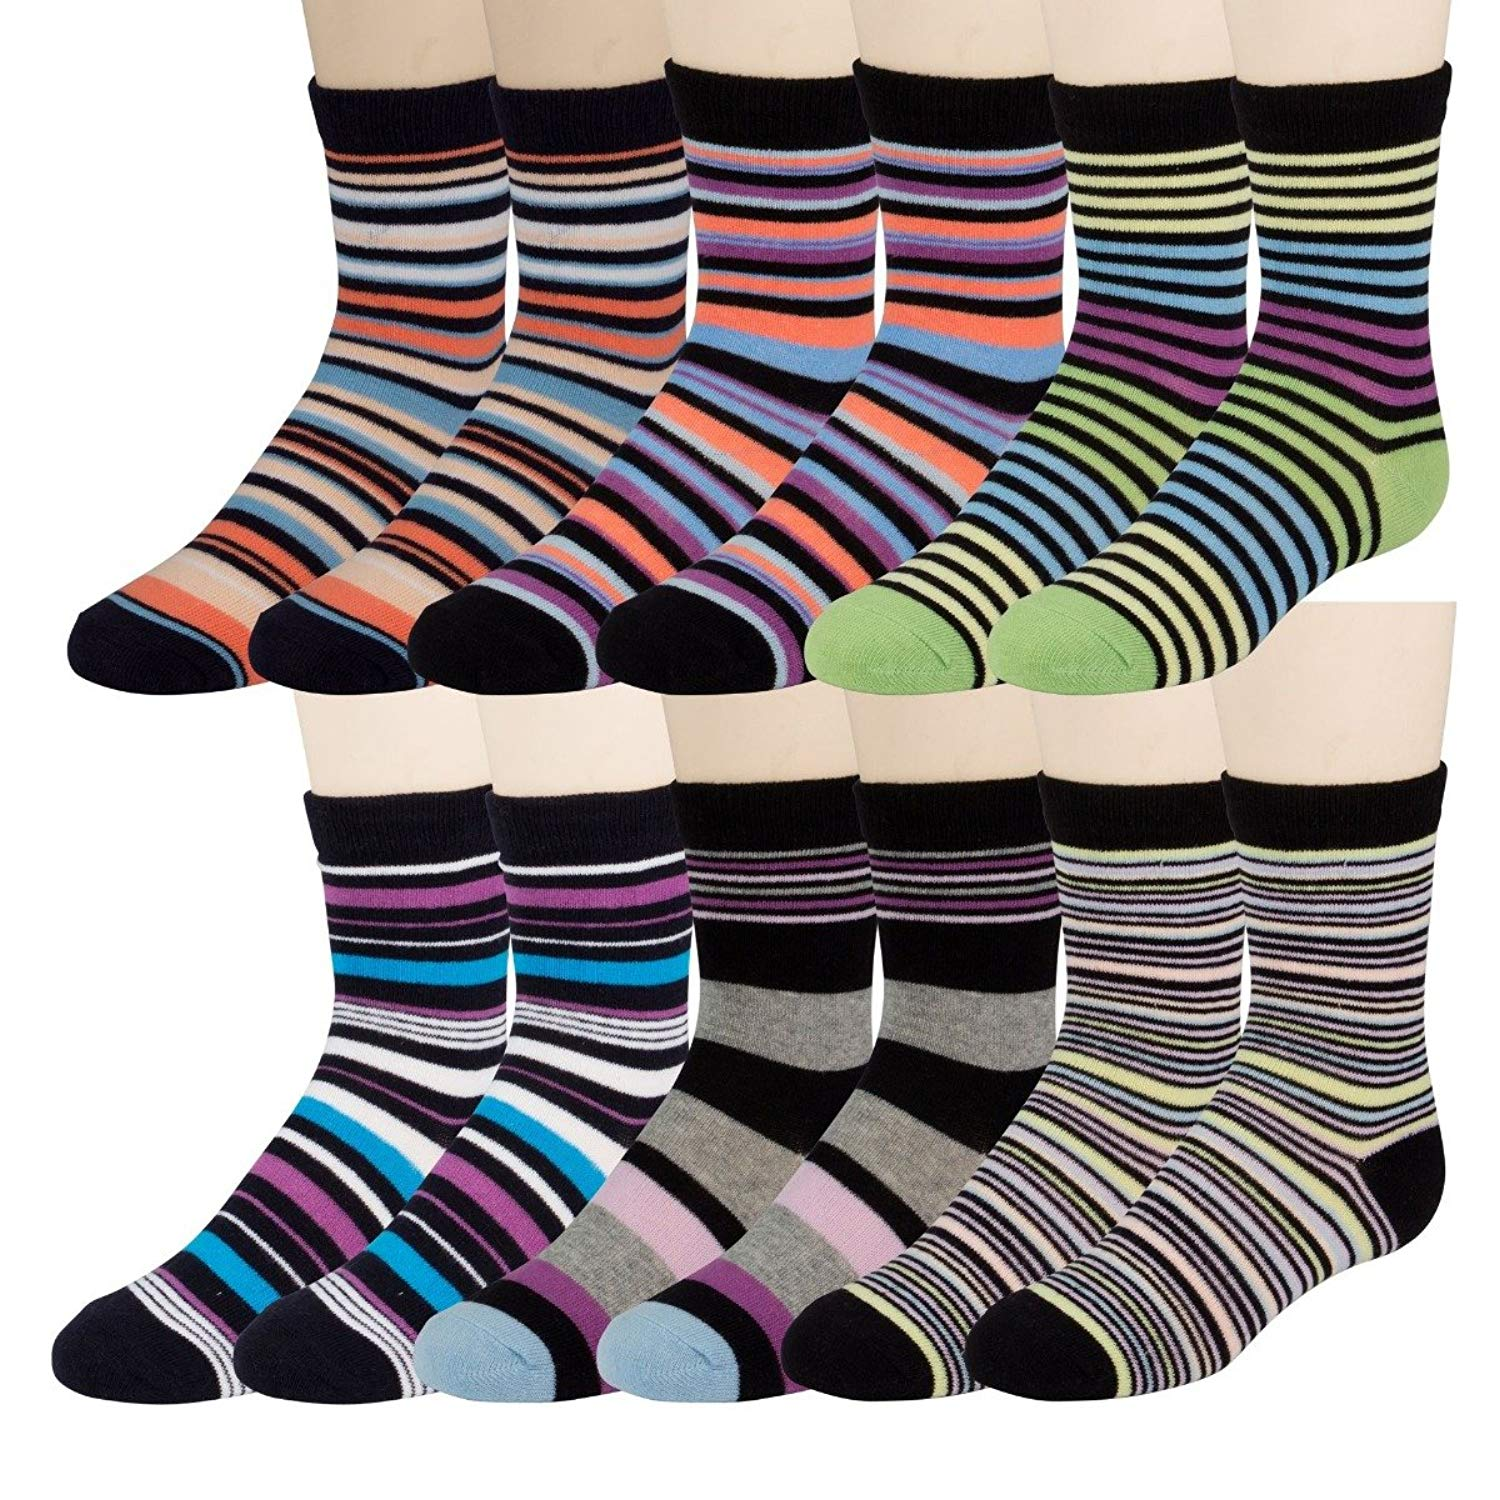 86f81cc42b0e Get Quotations · 12 Pairs excell Boys Dress Socks, 12 pairs, Striped  Colorful Fancy Cotton Socks